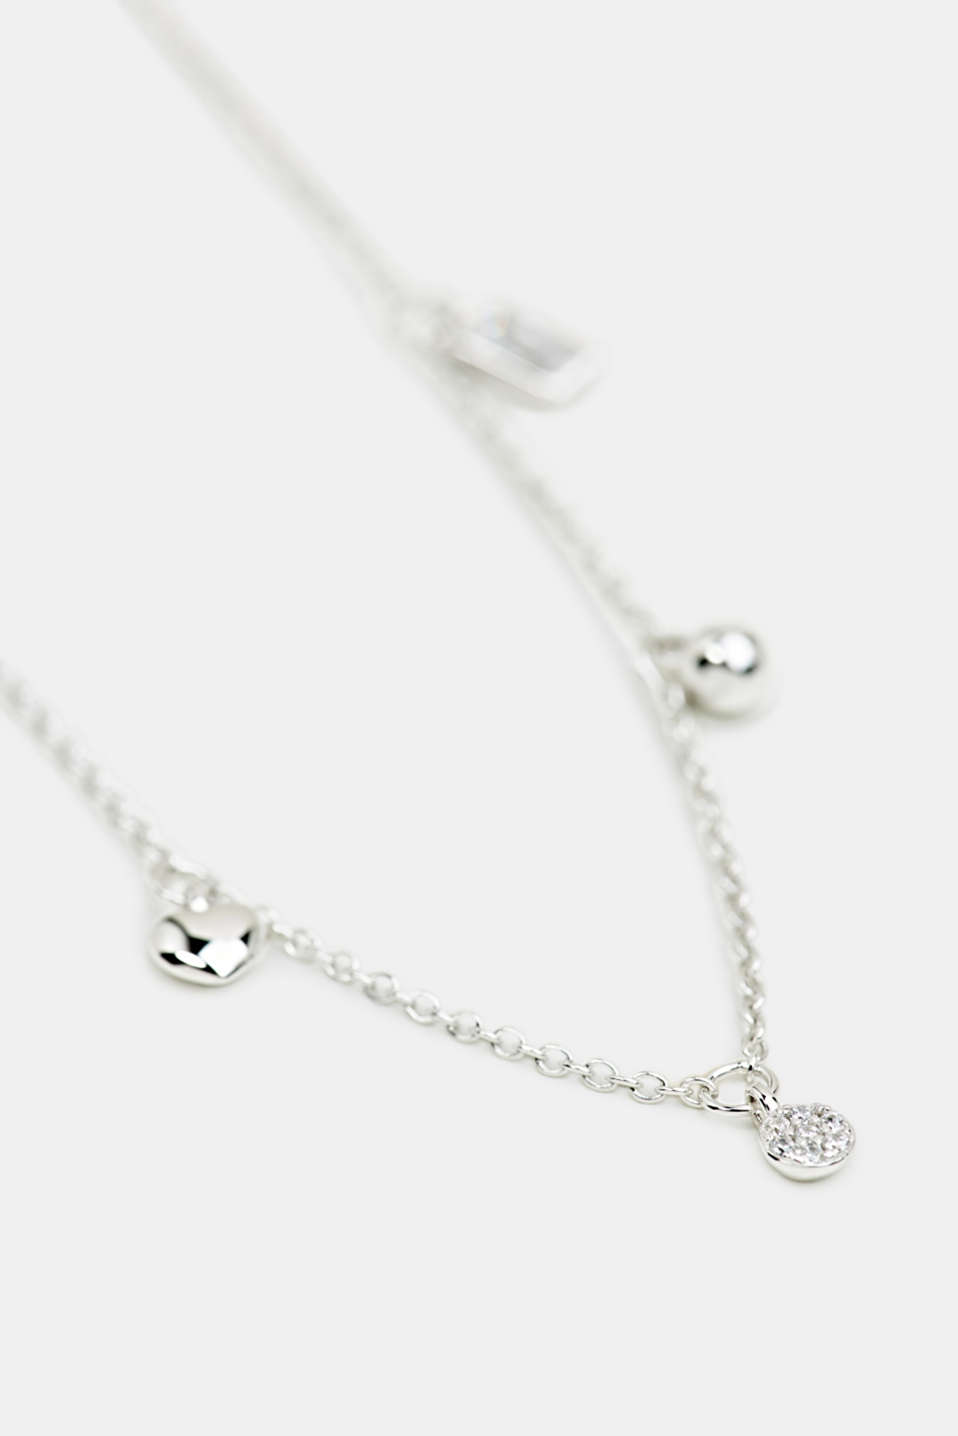 Necklace with charms, sterling silver, LCSILVER, detail image number 1